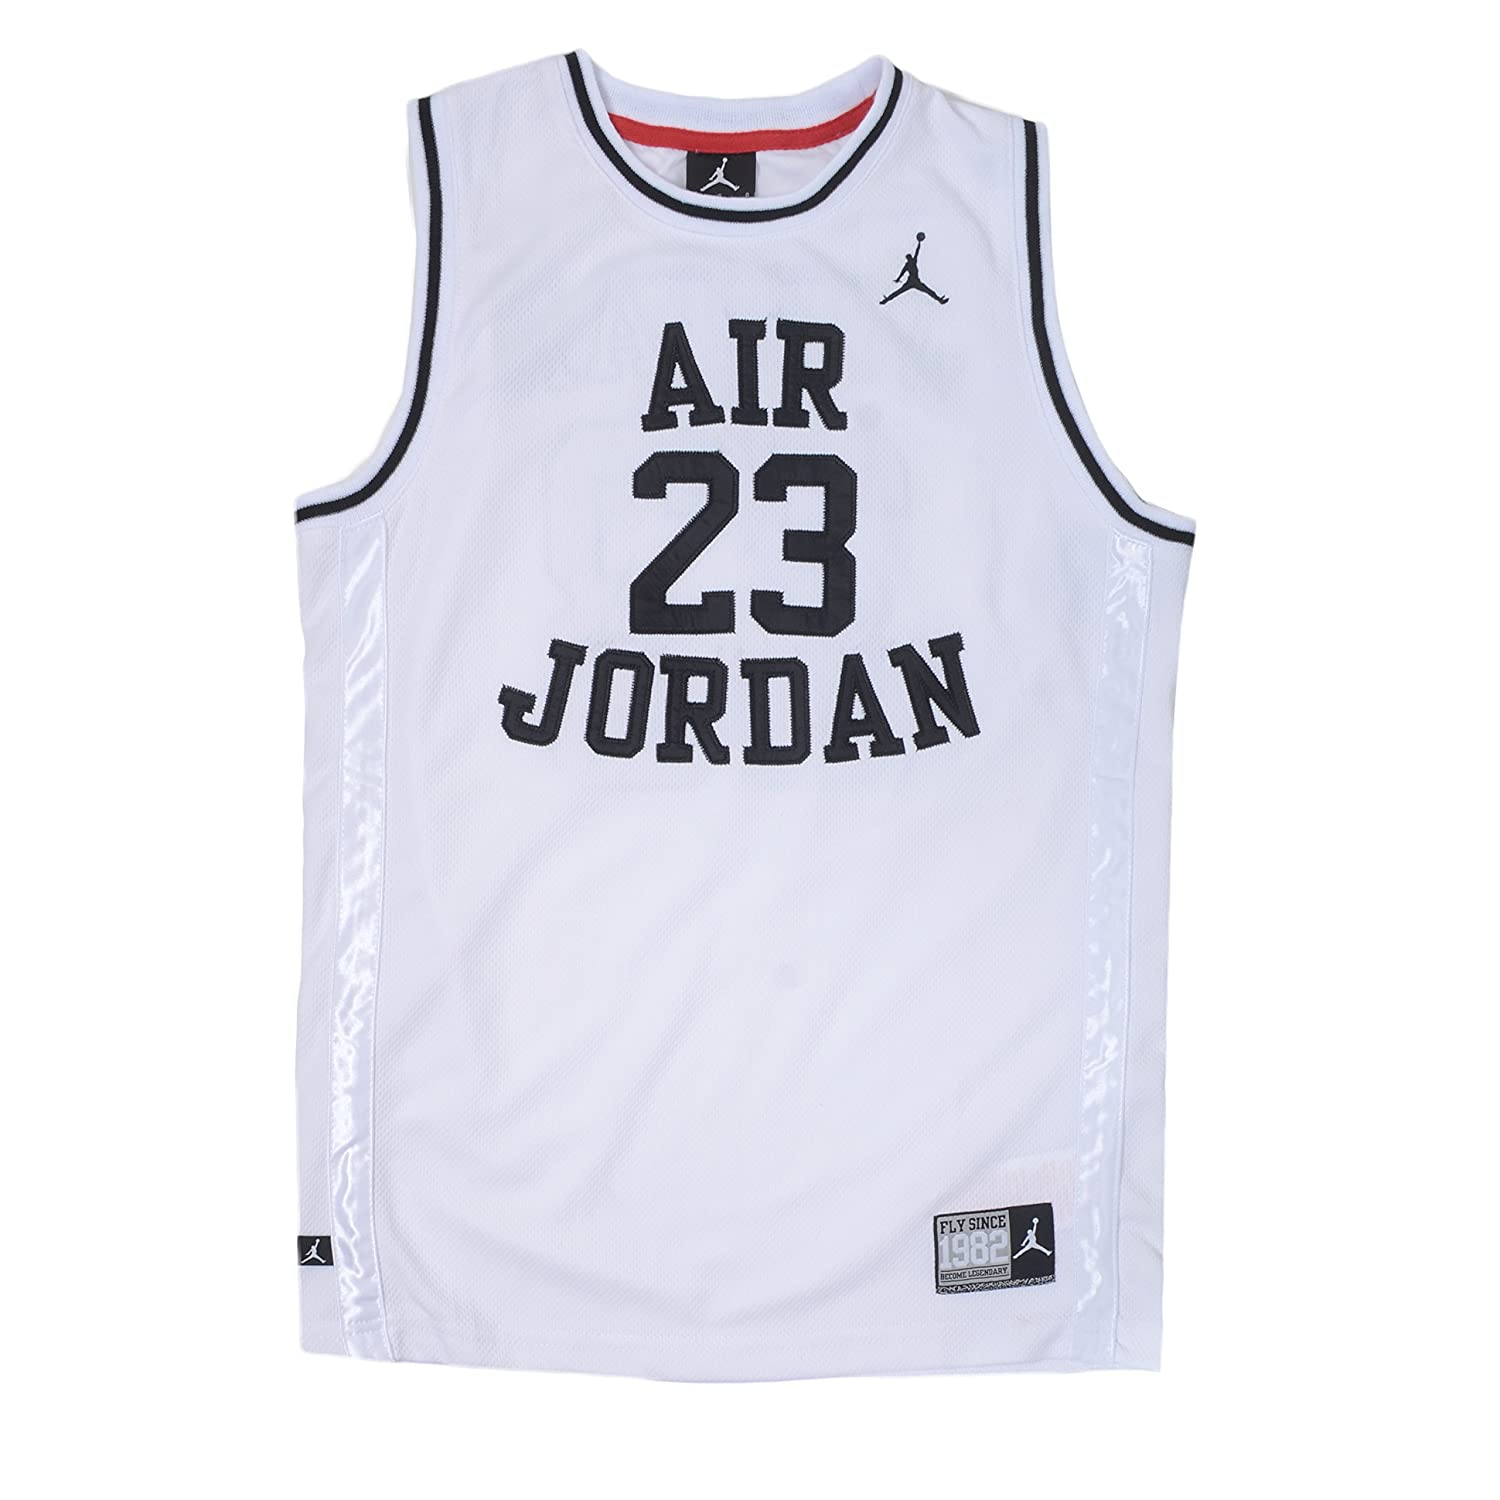 Nike Jordan Boys Youth Classic Mesh Jersey Shirt Sports T Air Outdoors